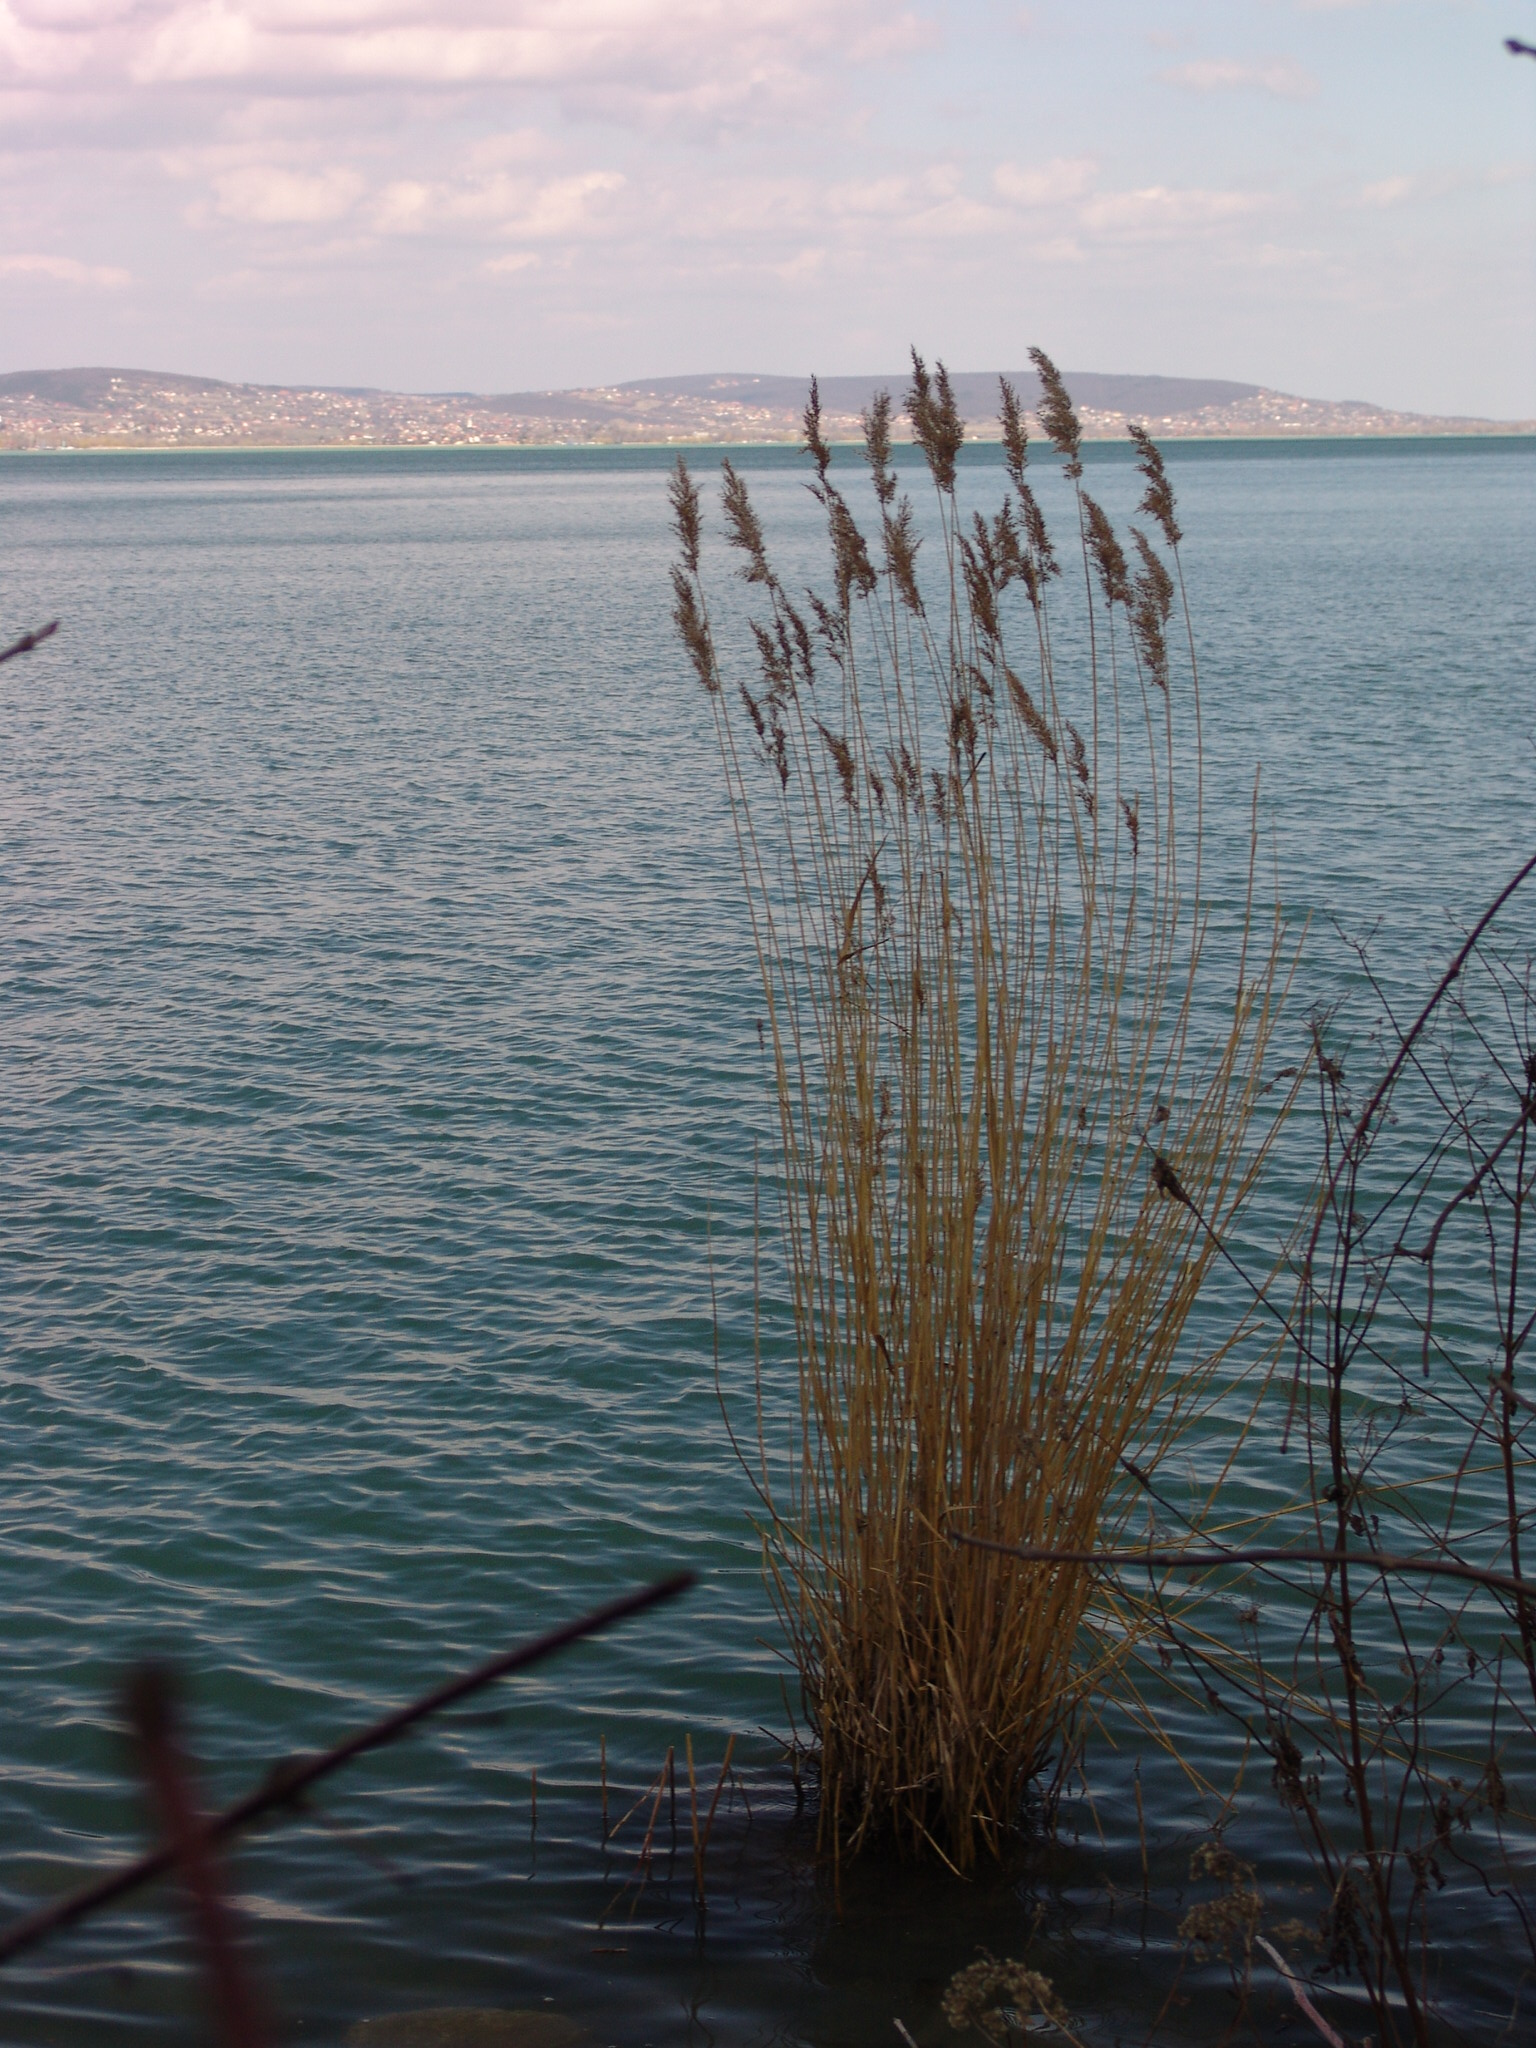 Remnant of a disappearing reed-bed on the eastern shore of the Tihany Peninsula. The northern shore of Lake Balaton in the background, between Balatonfüred and Balatonfűzfő photo by Gábor Varga